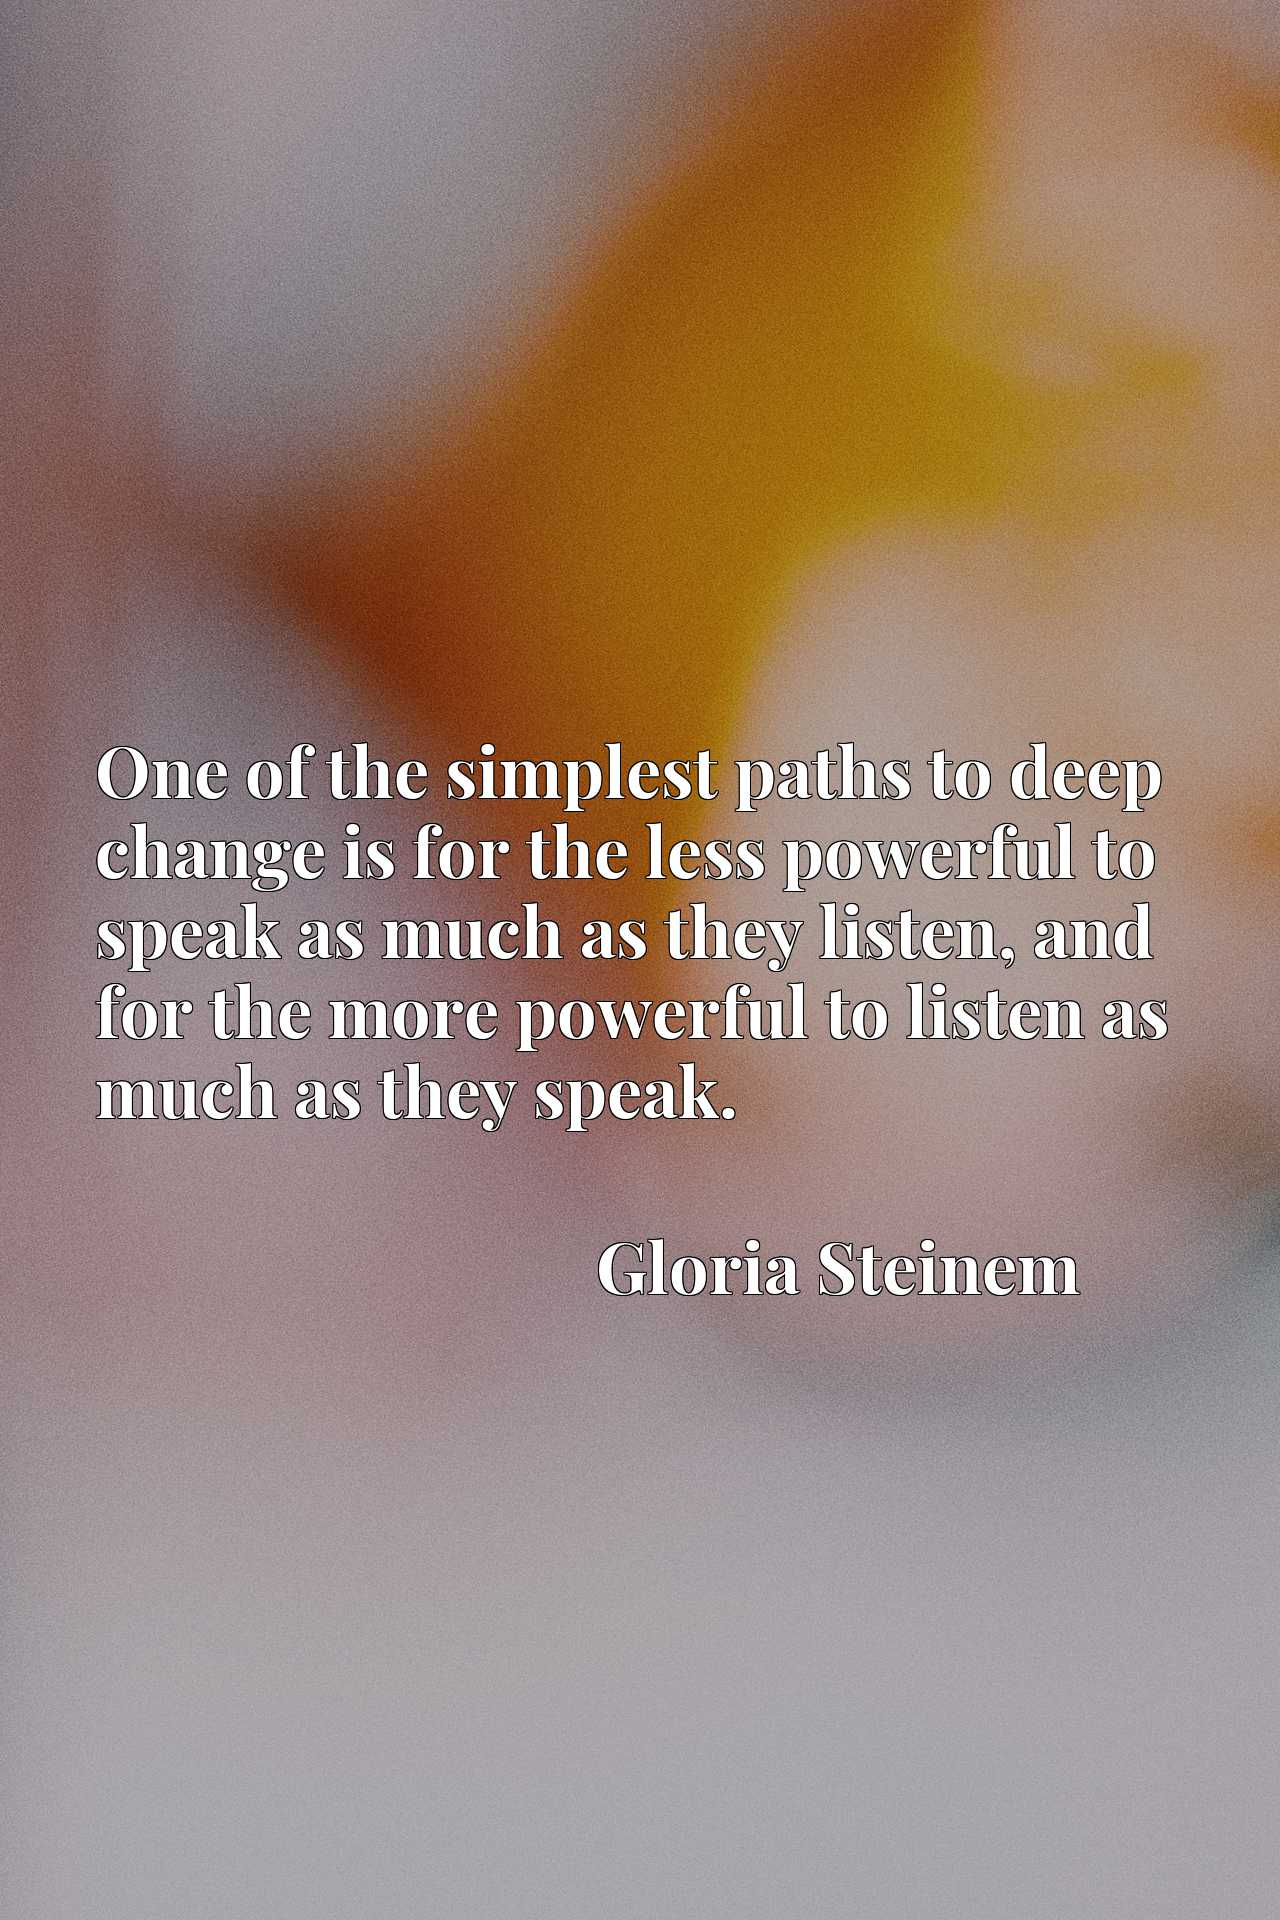 One of the simplest paths to deep change is for the less powerful to speak as much as they listen, and for the more powerful to listen as much as they speak.